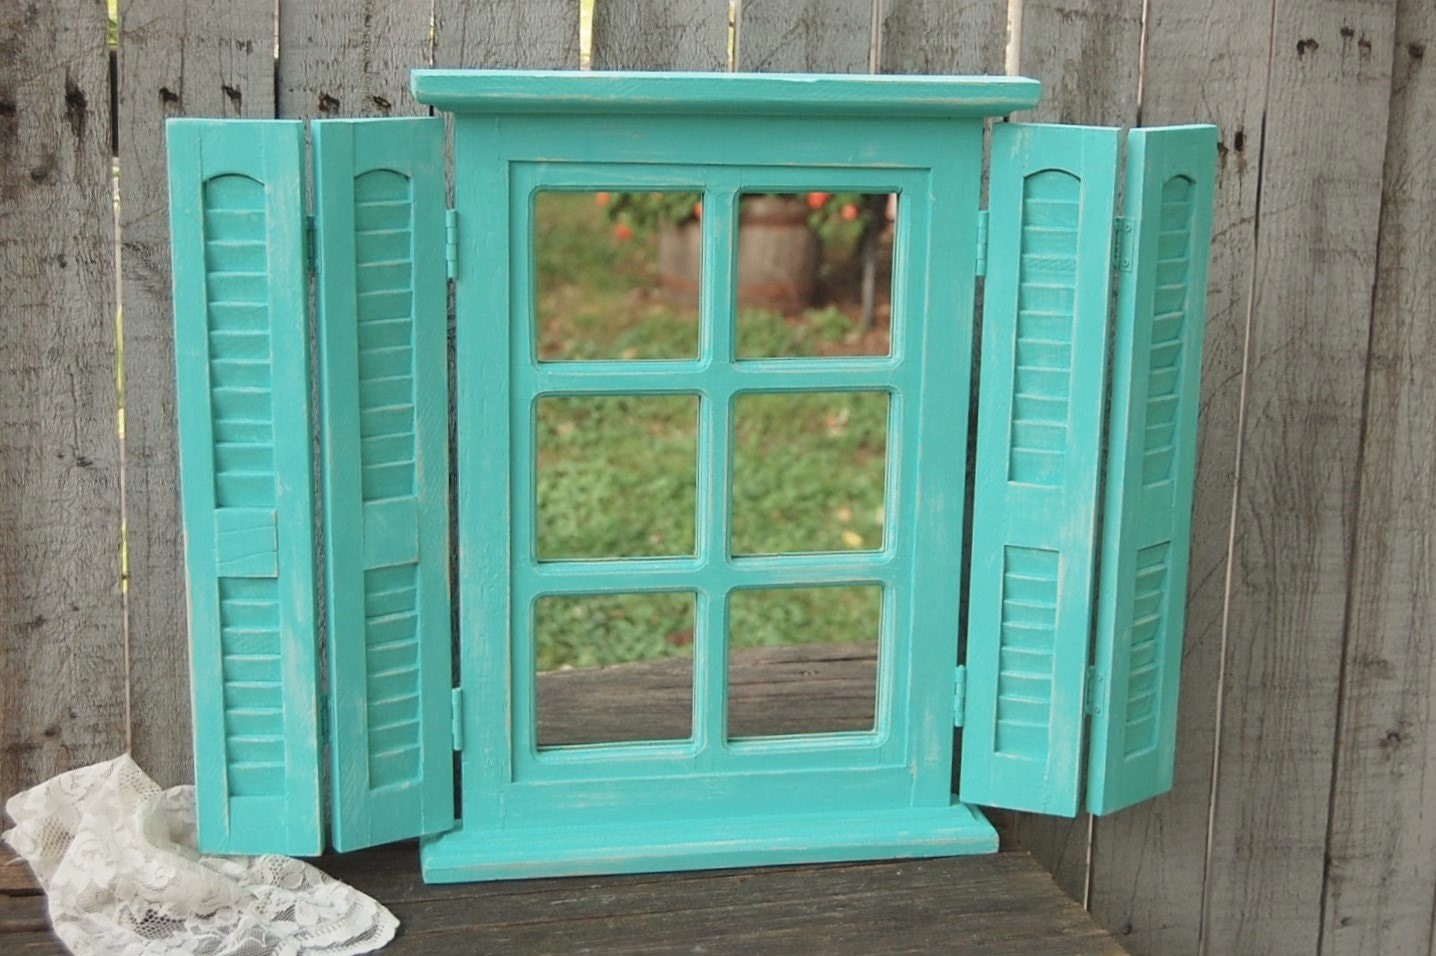 mirror shabby chic window shutters aqua turquoise. Black Bedroom Furniture Sets. Home Design Ideas